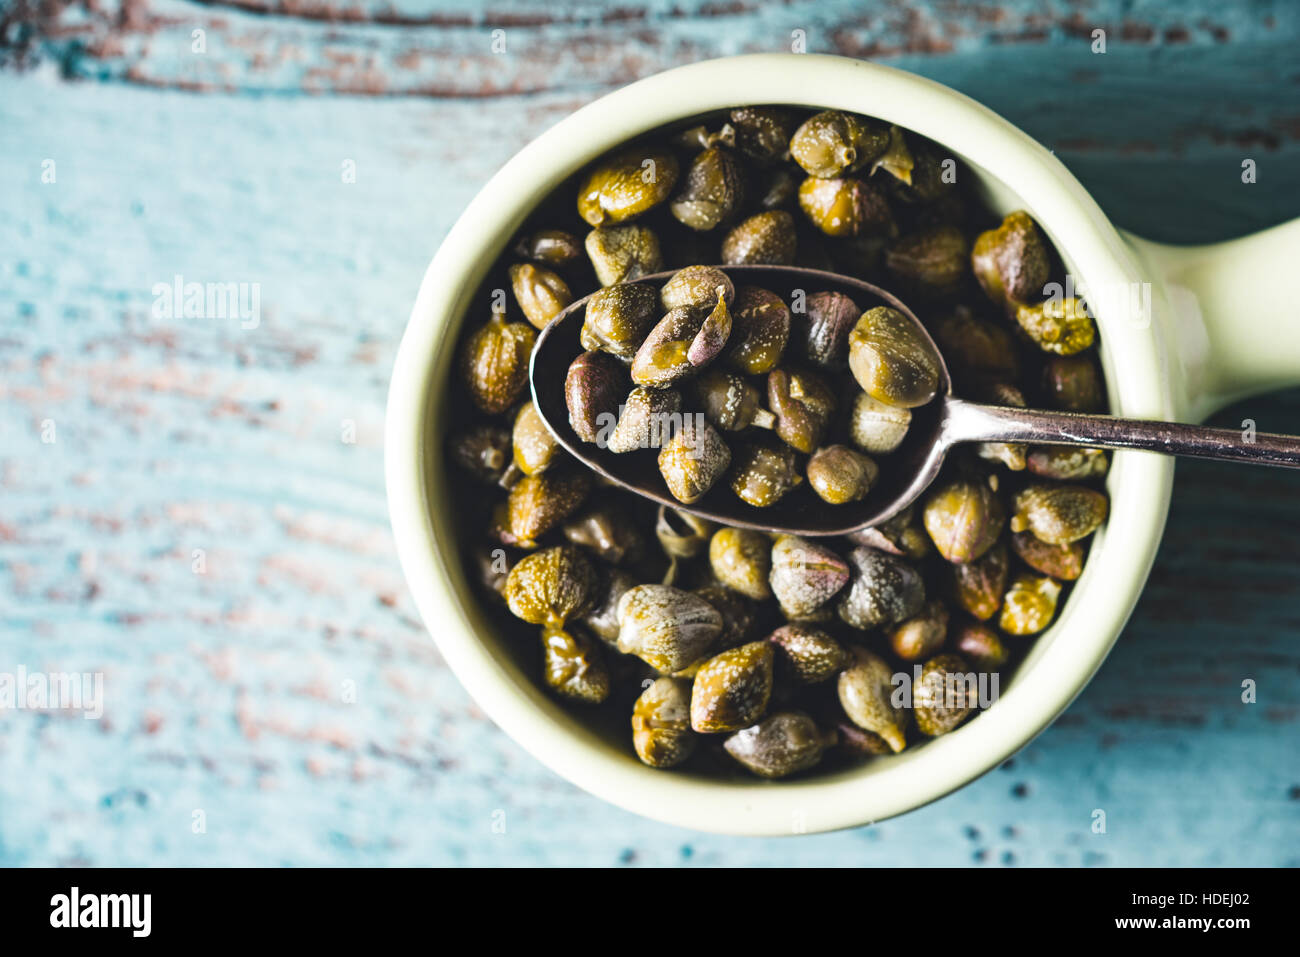 Capers in the bowl on the light blue background top view - Stock Image